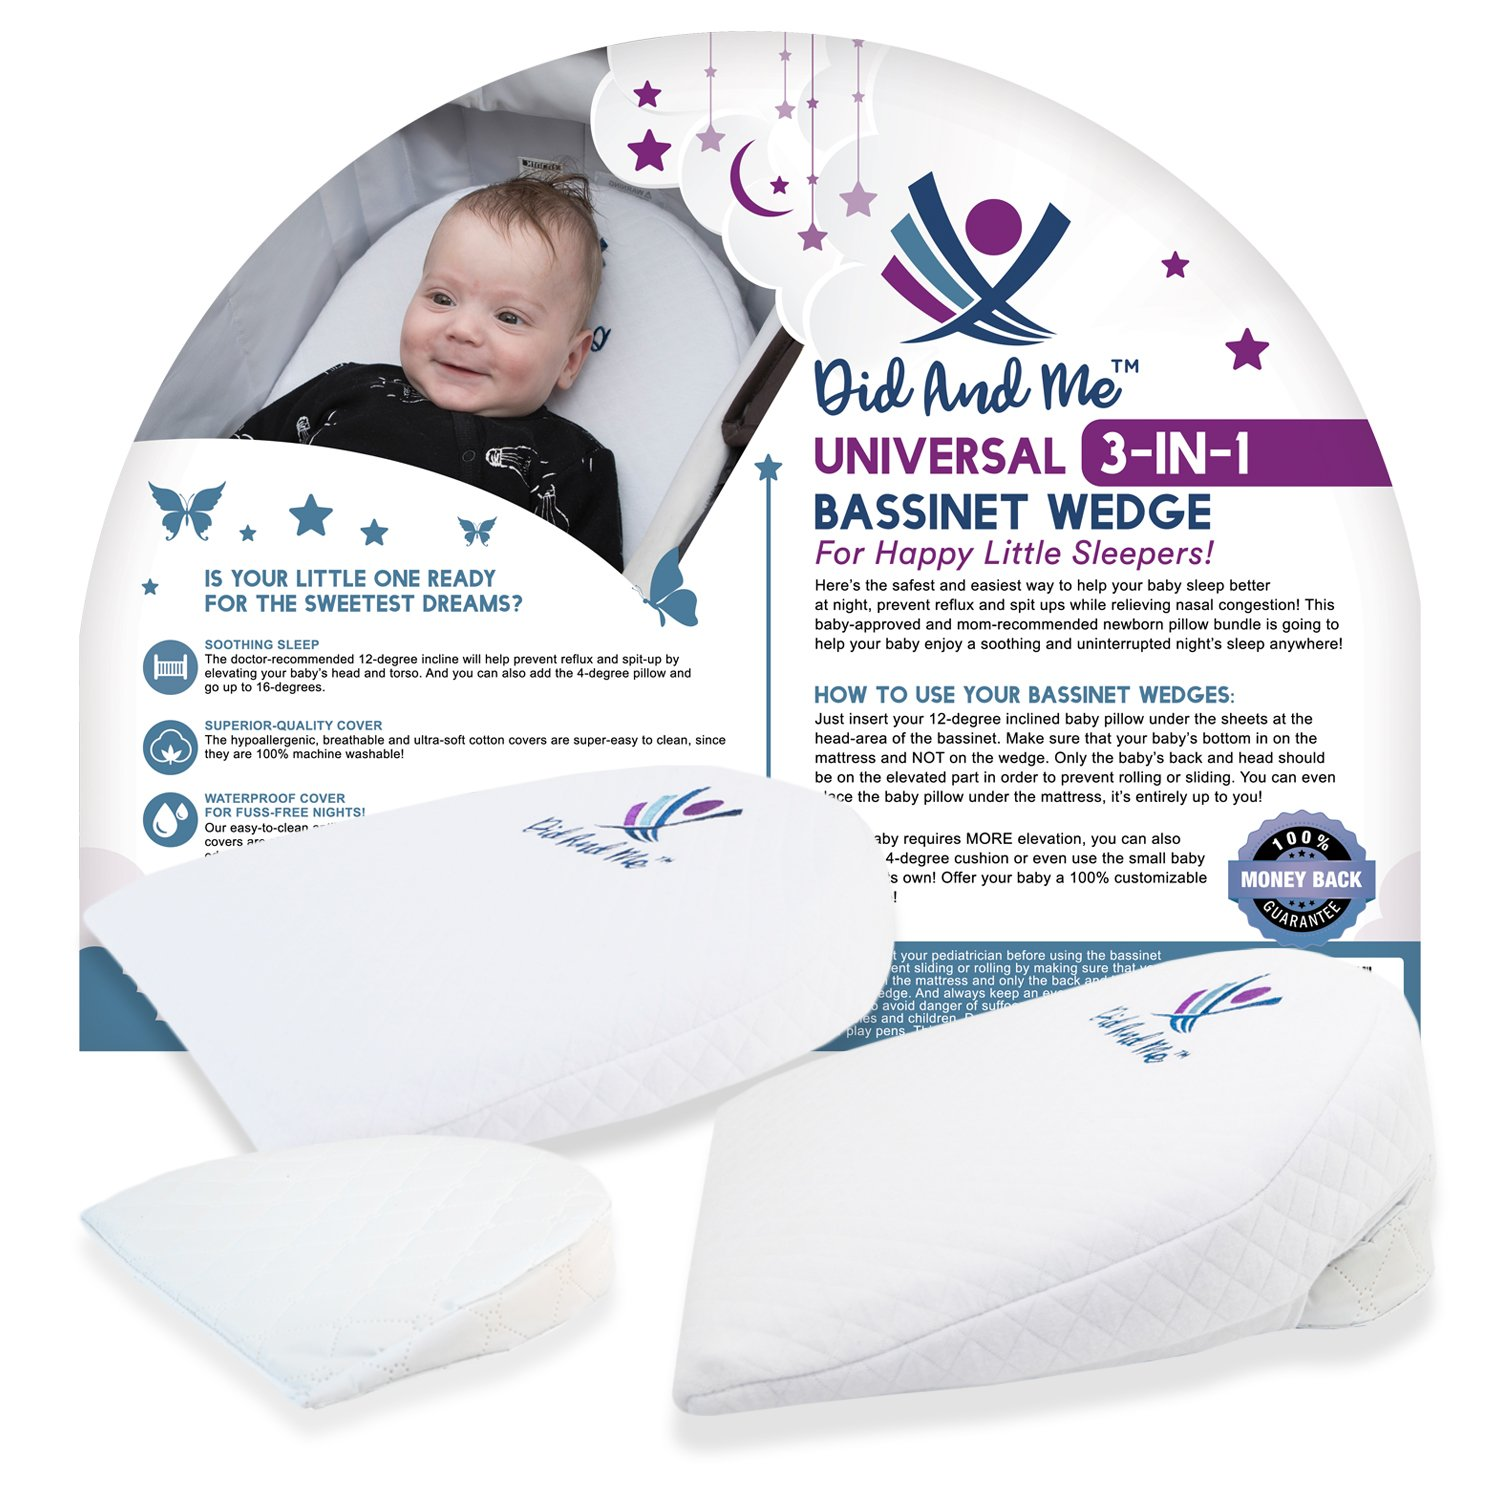 3 in 1 Universal Bassinet Wedge | Elevated Sleeping Pillow Helps Newborn Babies With Acid Reflux, Congestion, Colic | Adjustable Cushion Supports Healthy Sleep and Eating With Carrying Case